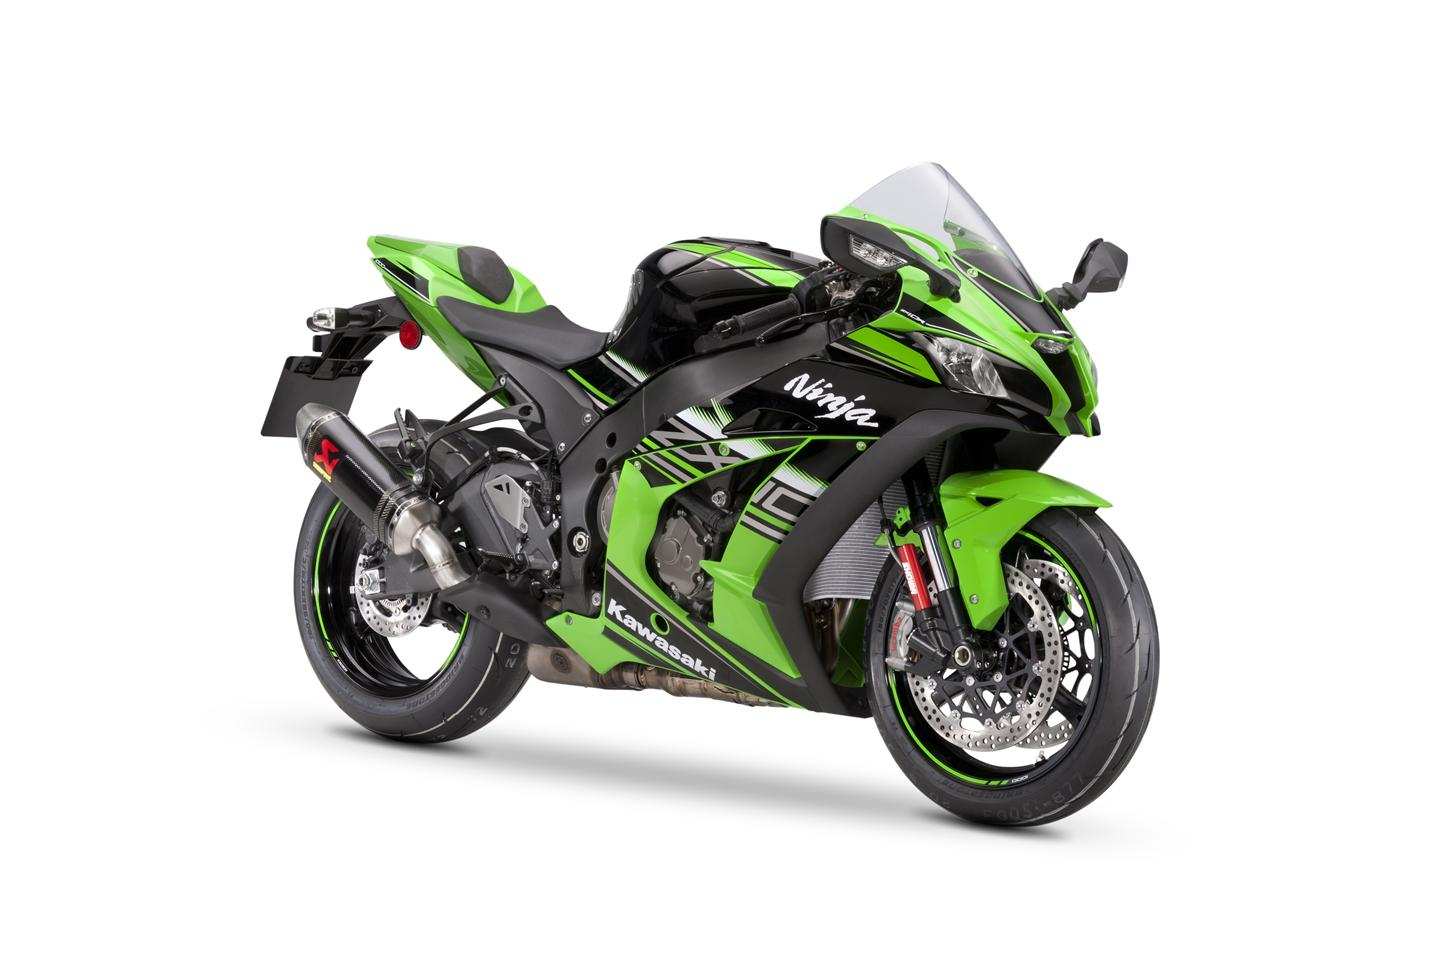 Kawasaki Ninja ZX-10R Performance - P&H Motorcycles